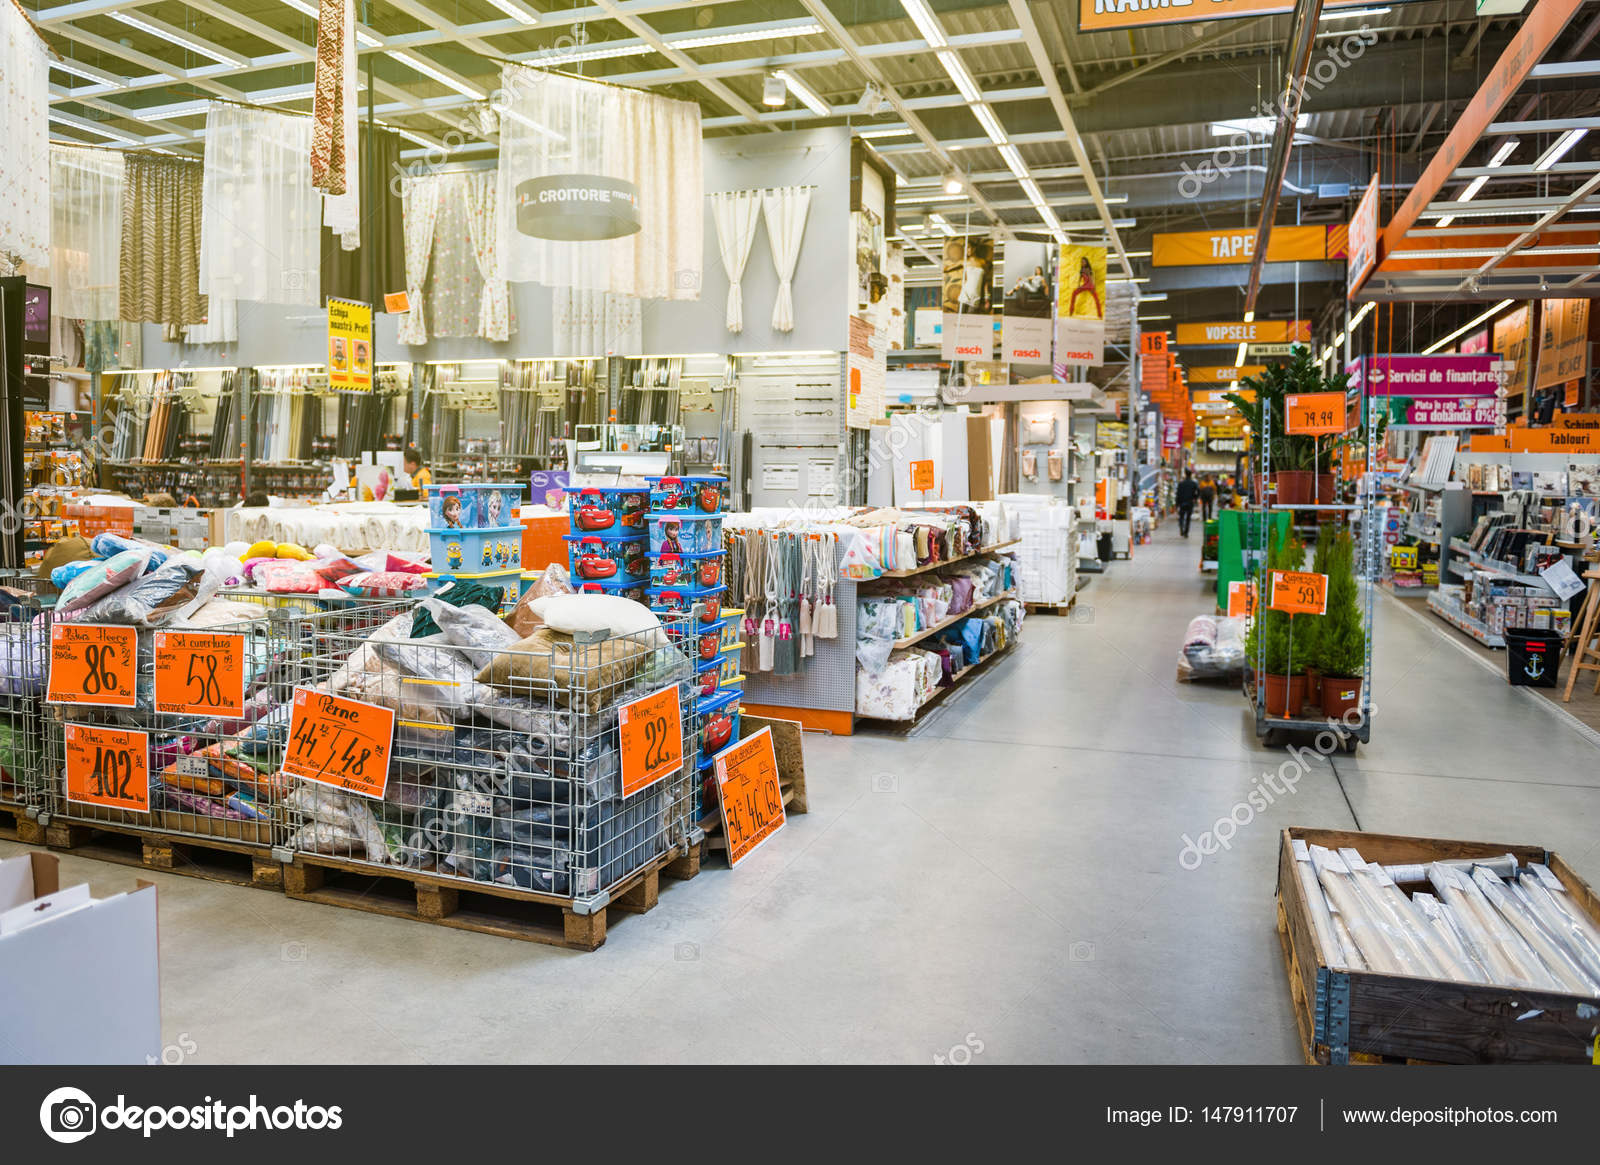 Diy store with diverse products stock editorial photo ifeelstock bucharest romania apr 1 2016 interior of hornbach the german diy store chain offering home improvement and do it yourself goods diverse pillows solutioingenieria